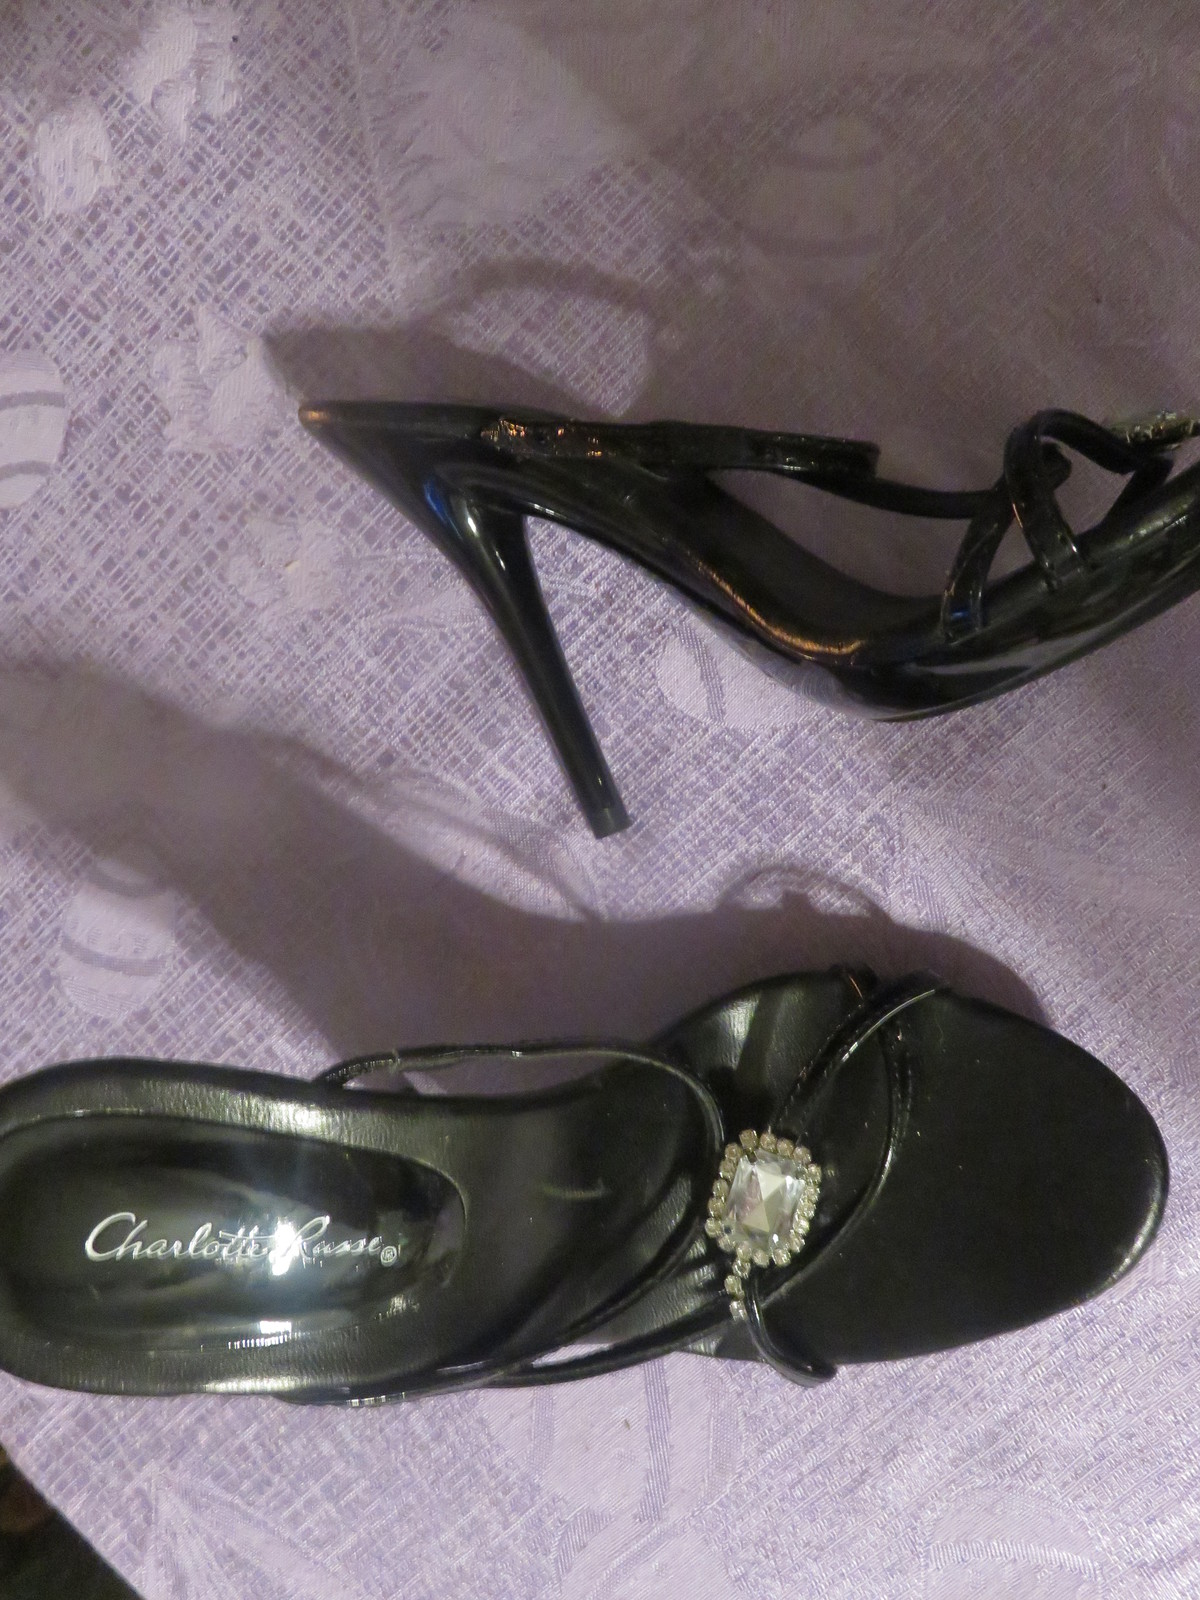 4d36a1705fbc CHARLOTTE RUSSE HIGH HEELS BLACK WITH RHINESTONES SIZE 6 GREAT FOR PROM NEW